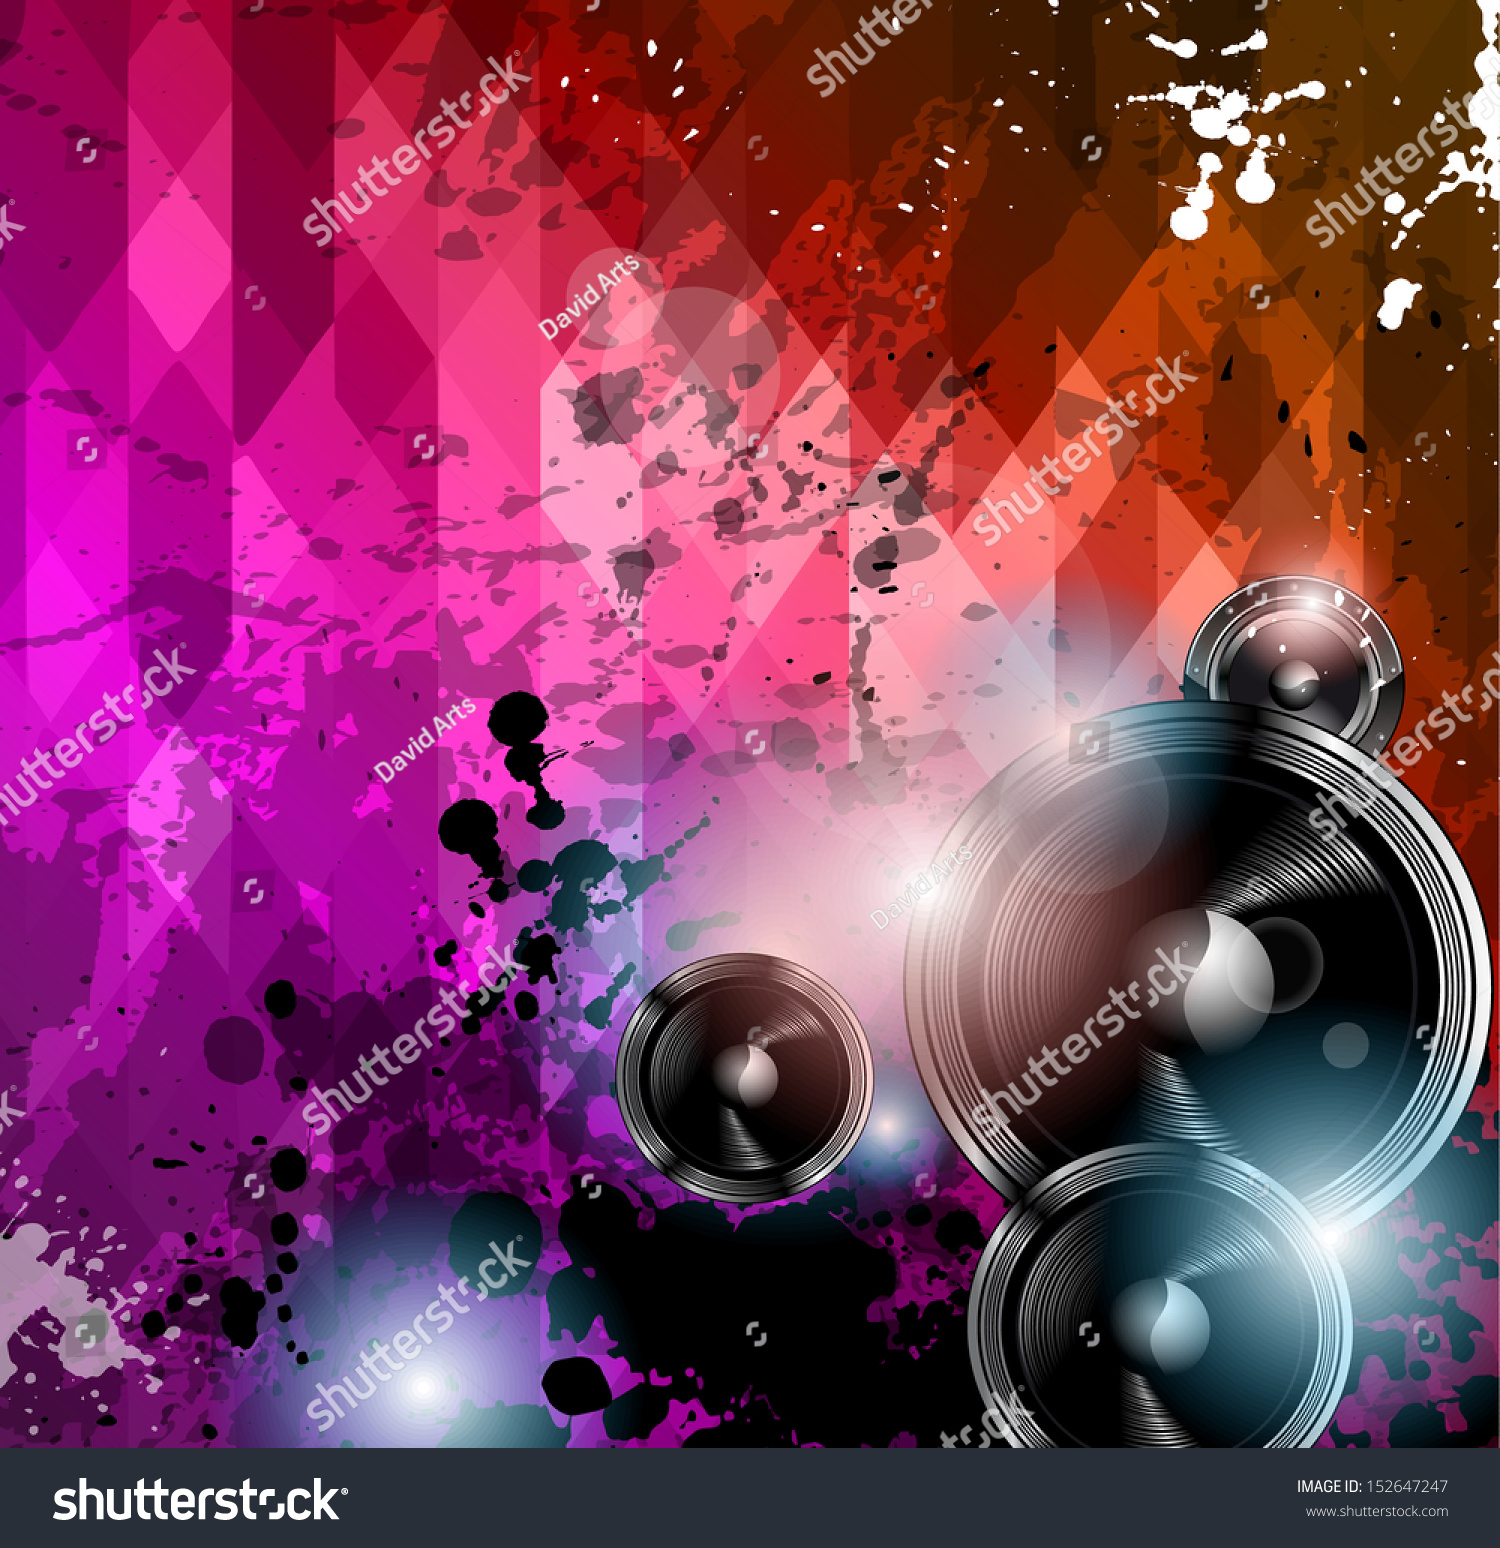 Disco club flyer template abstract background stock illustration 152647247 shutterstock for Nightclub flyer background